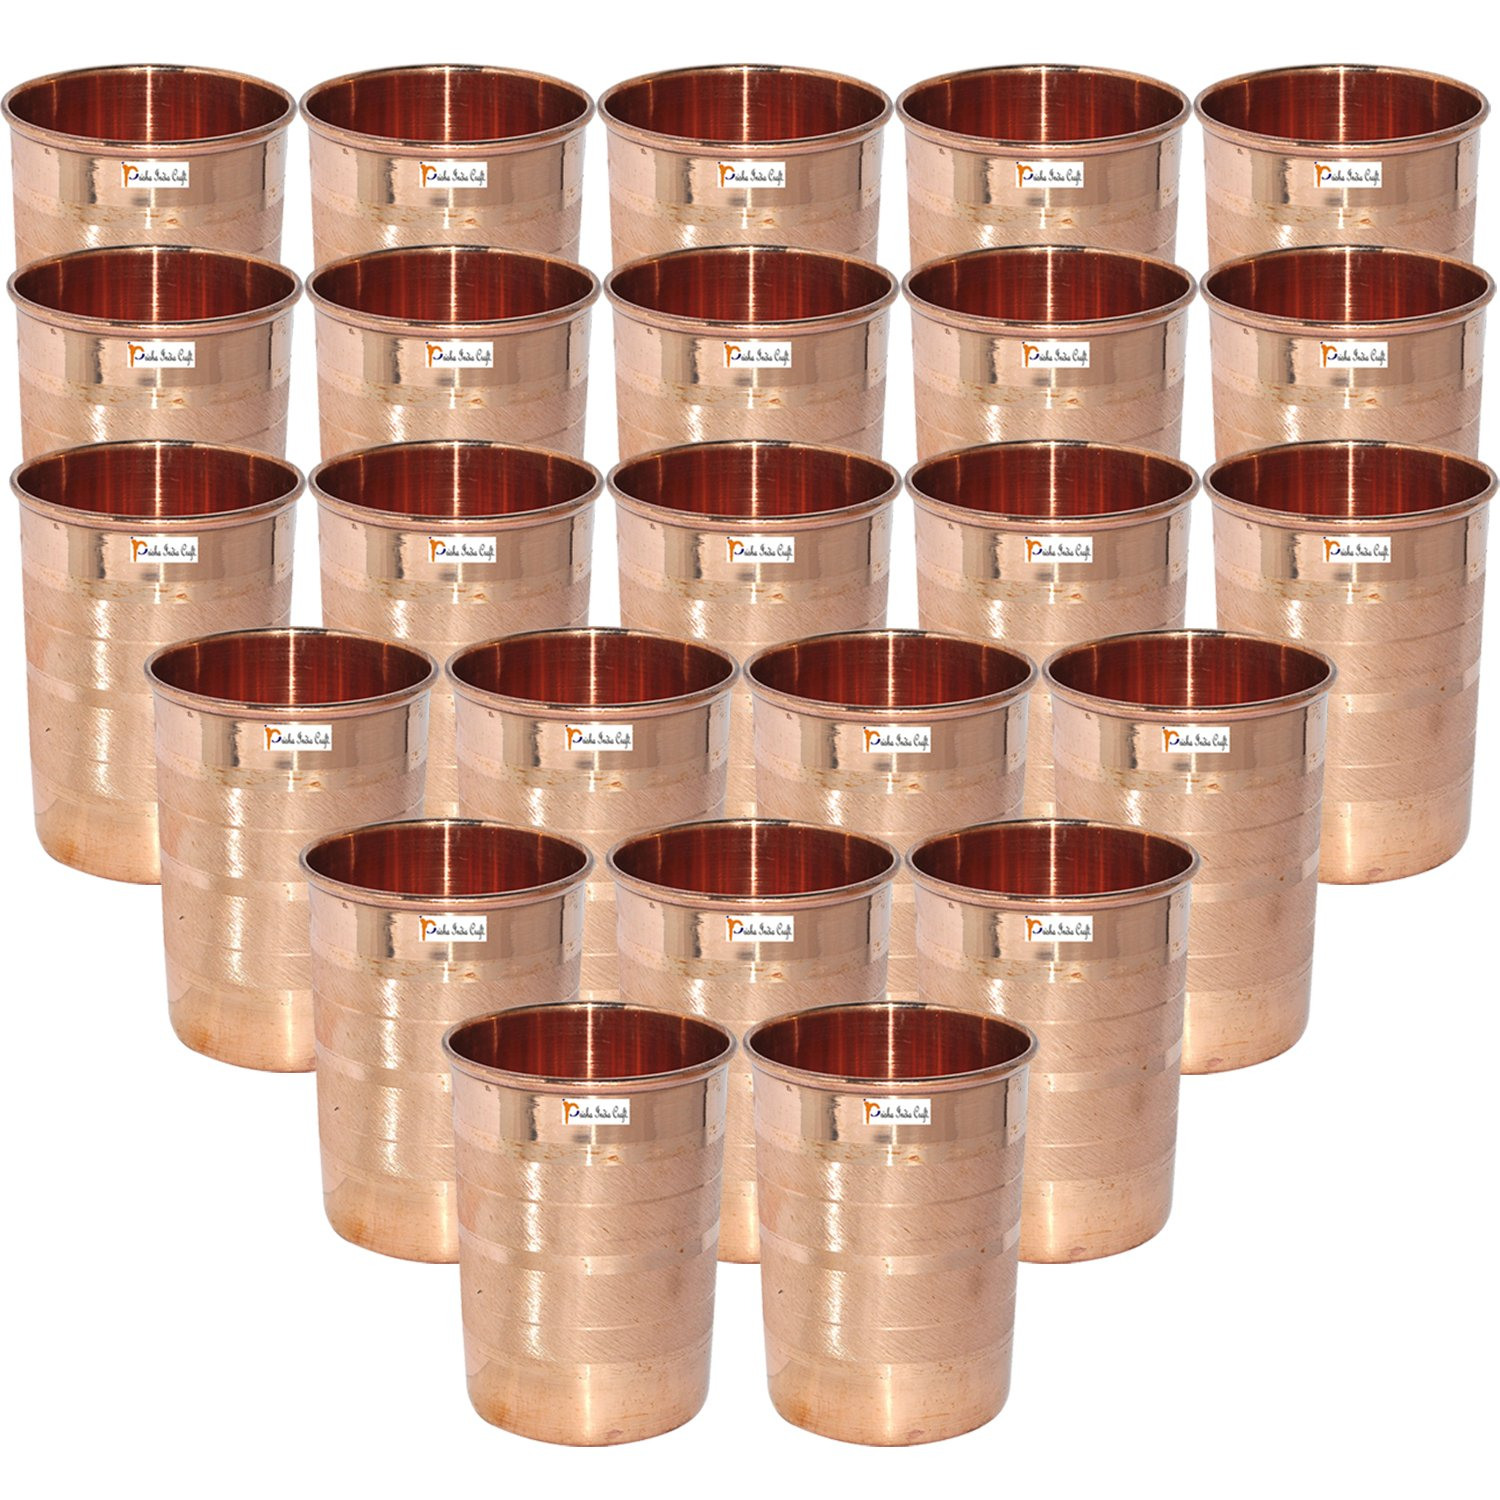 Set Of 24 - Prisha India Craft  Copper Cup Water Tumbler - Handmade Water Glasses - Traveler's Copper Mug For Ayurveda Benefits - Christmas Gift Item